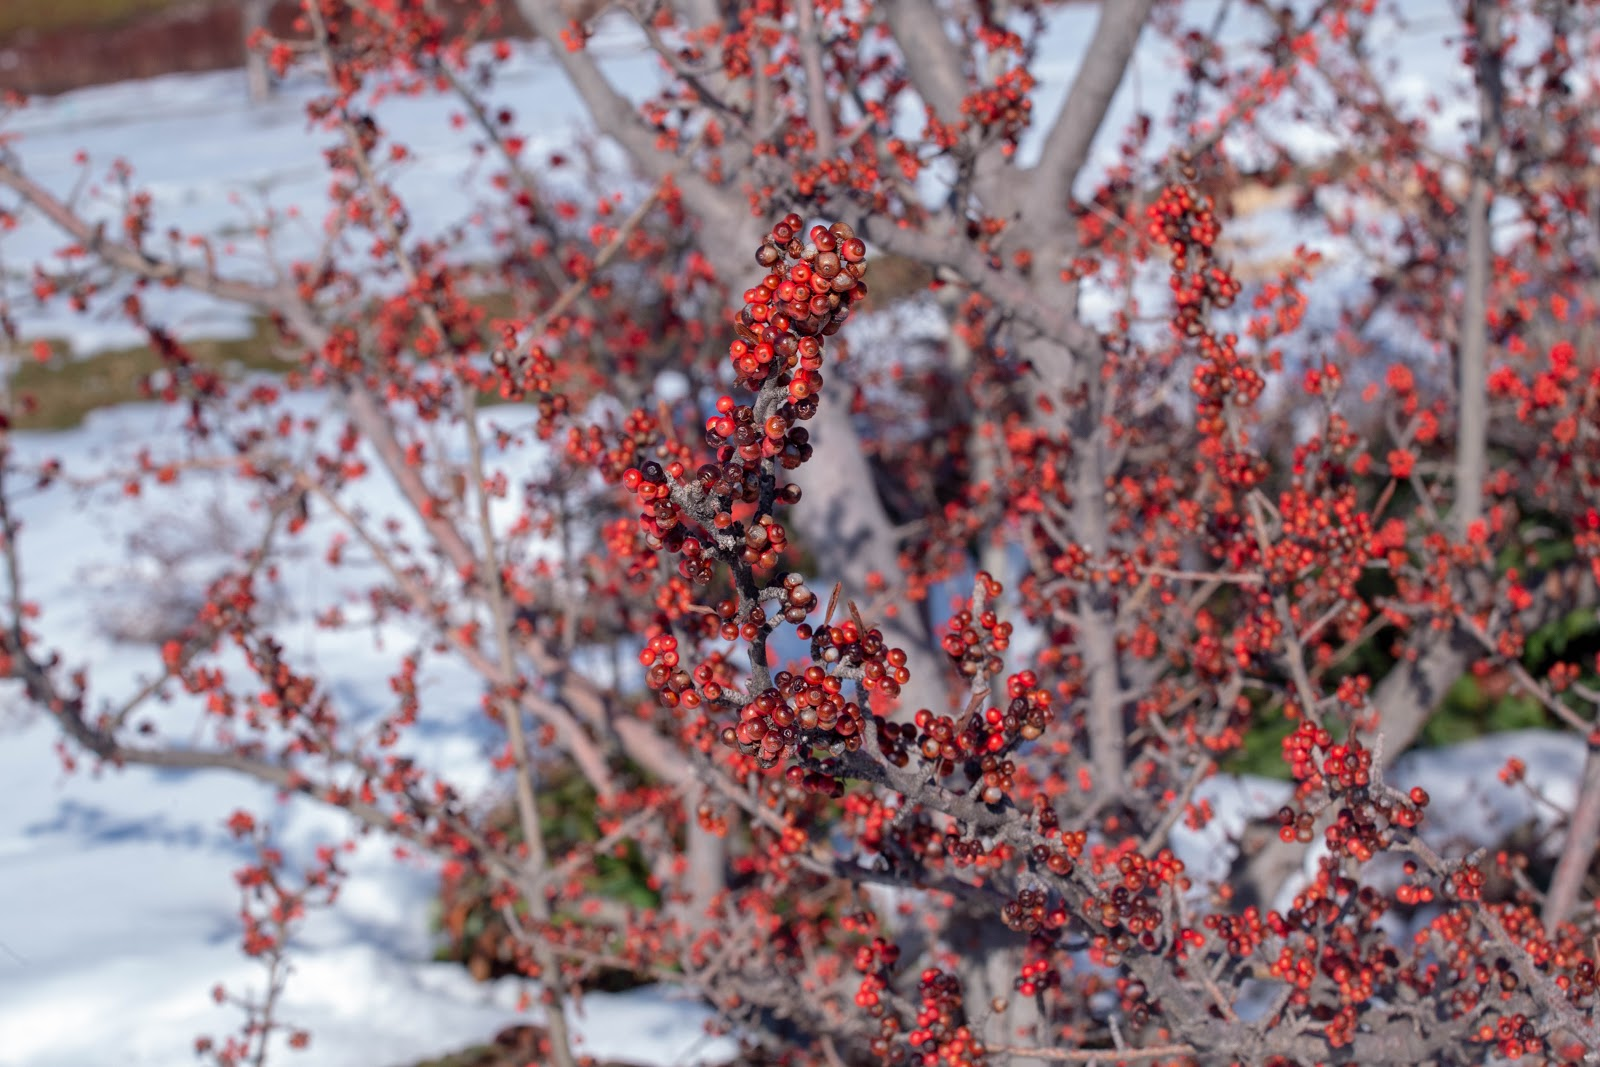 Holly berries in the Four Seasons Garden at Red Butte Garden. KUED, All Rights Reserved.